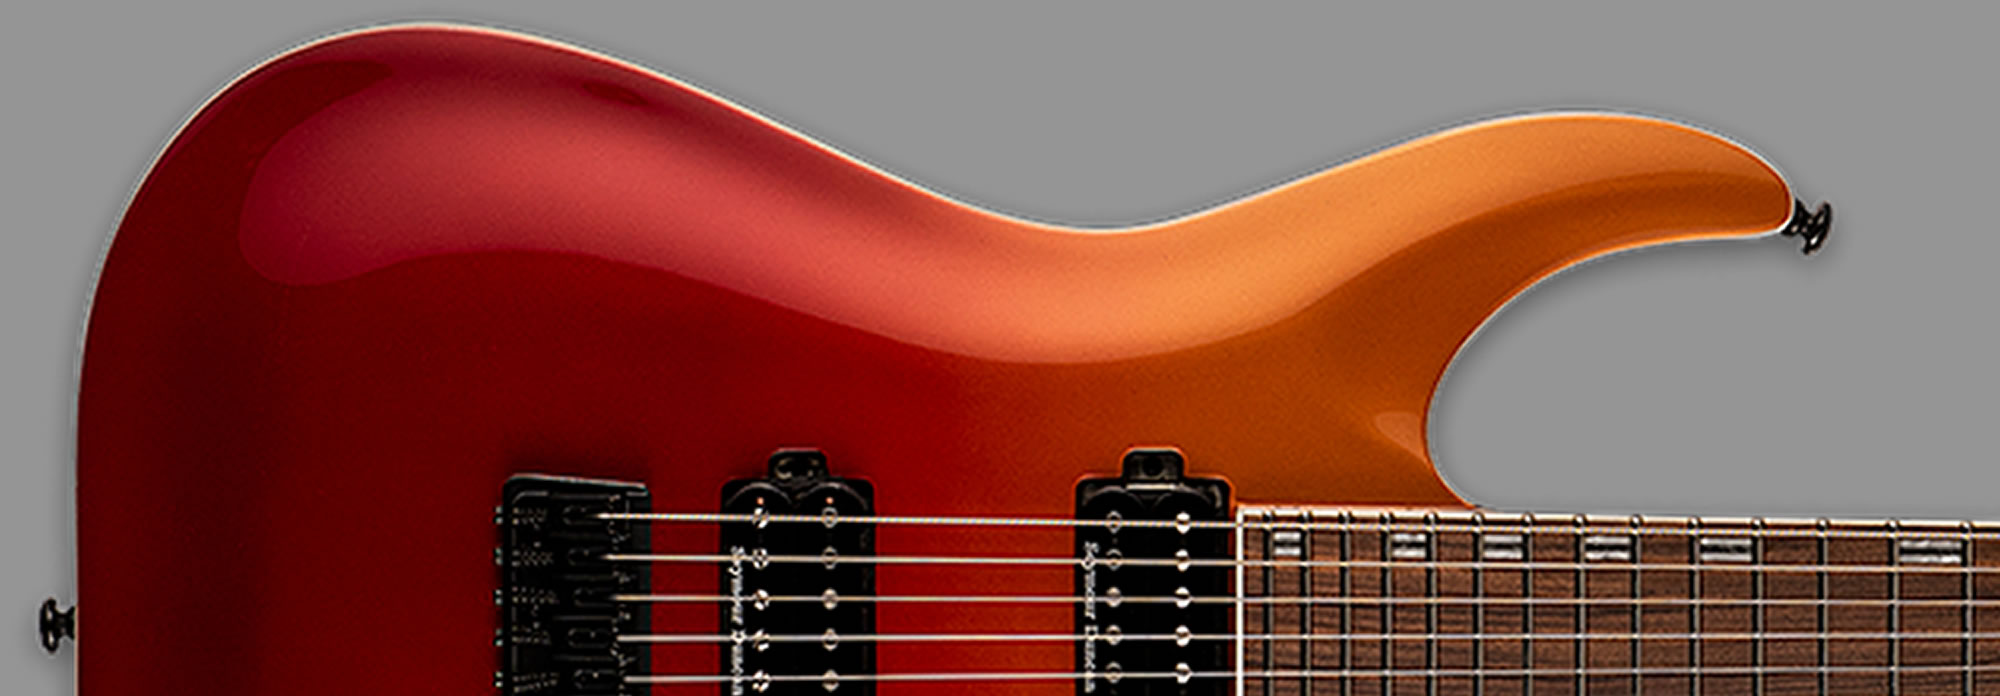 ESP LTD H-440 Crimson Fade Metallic